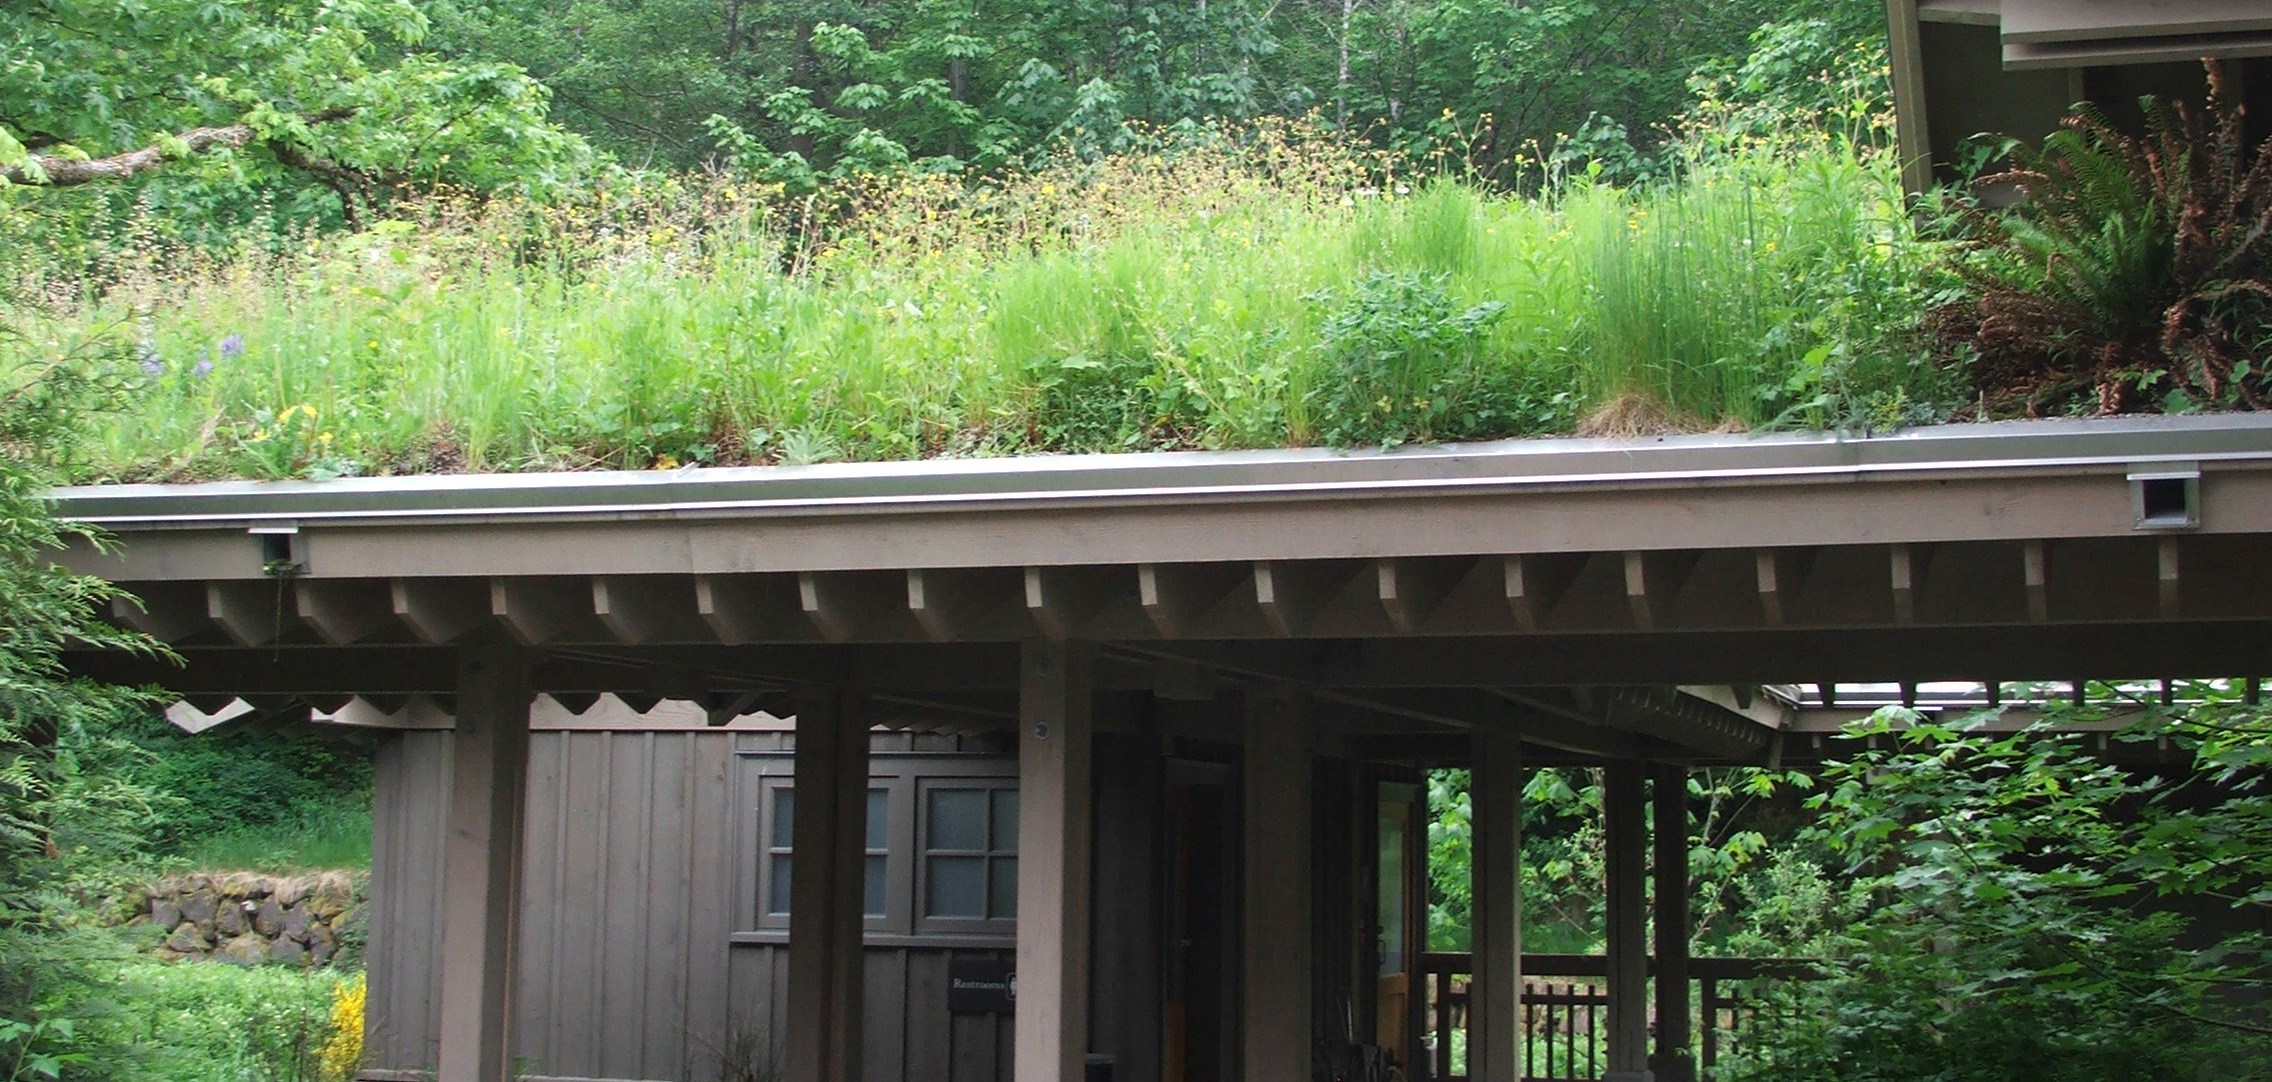 This is an image of a green roof.